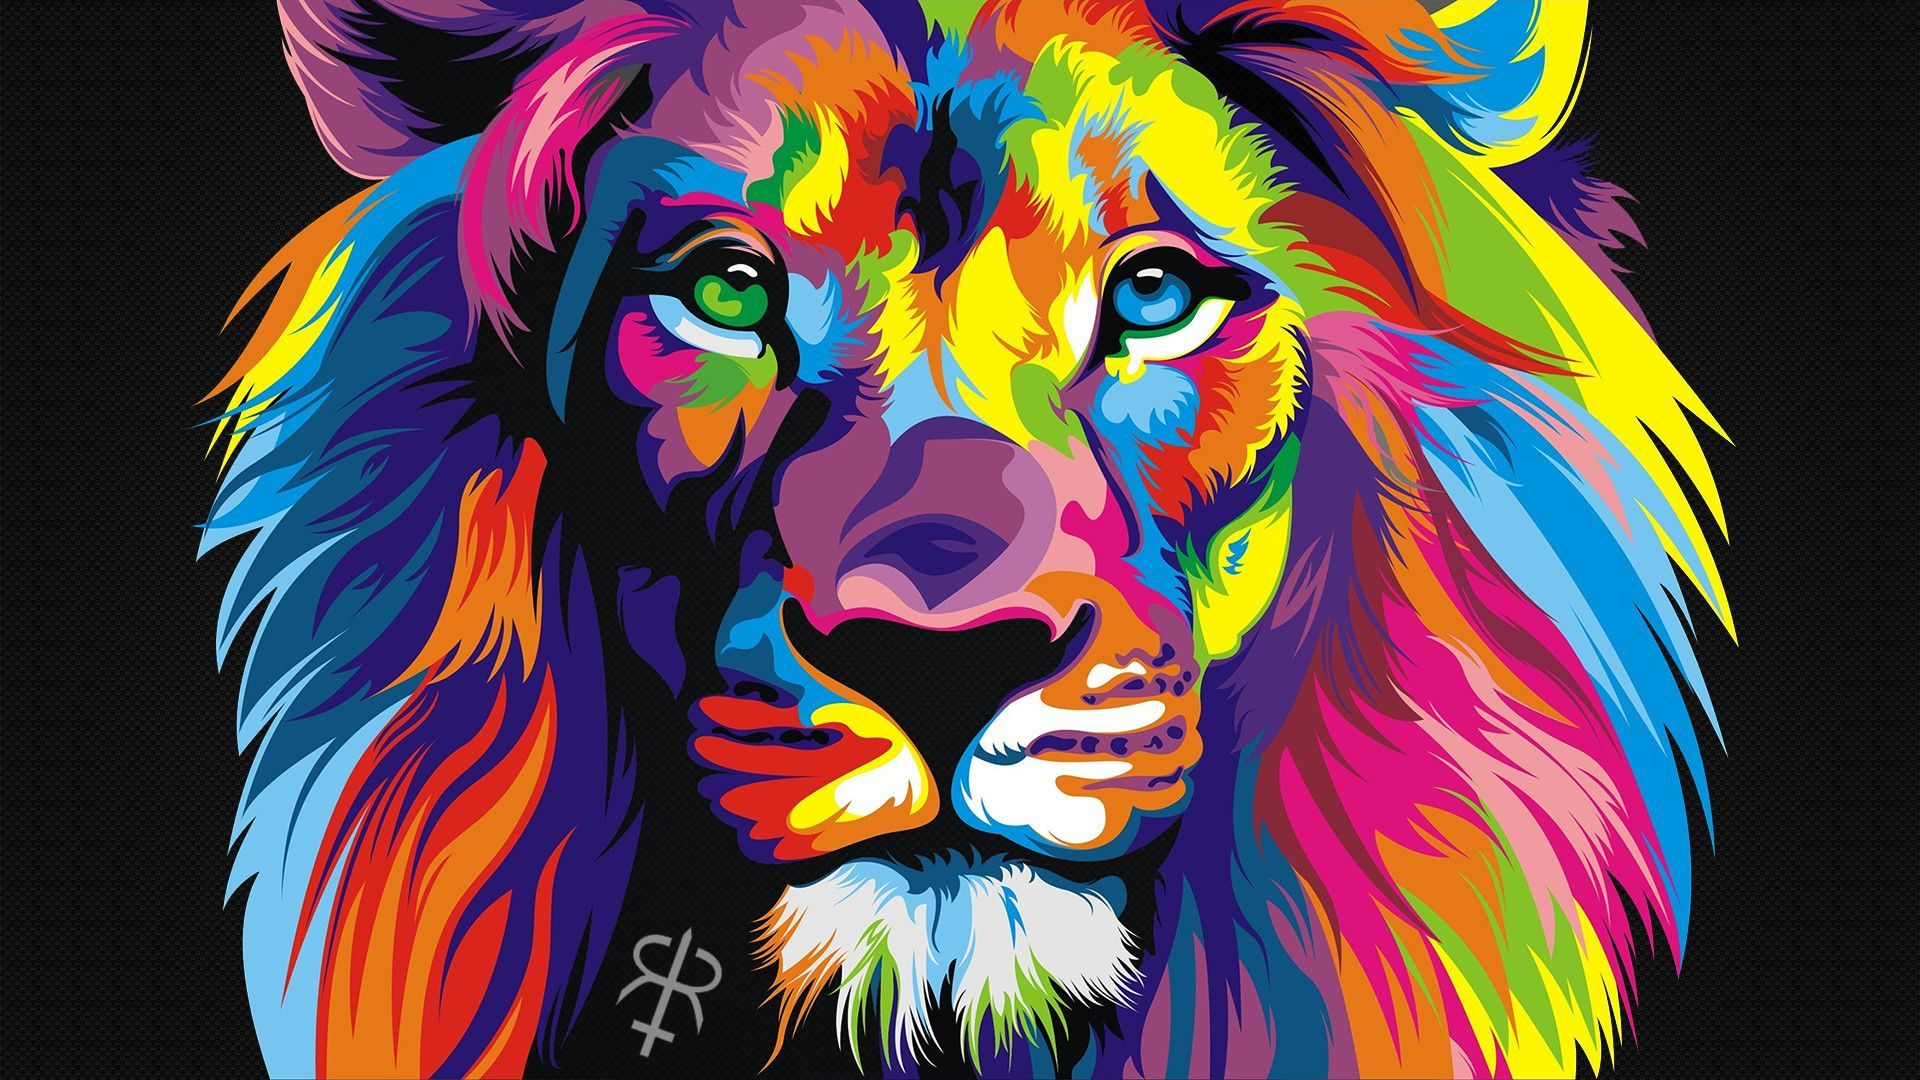 Lion Art vertical wallpaper hd